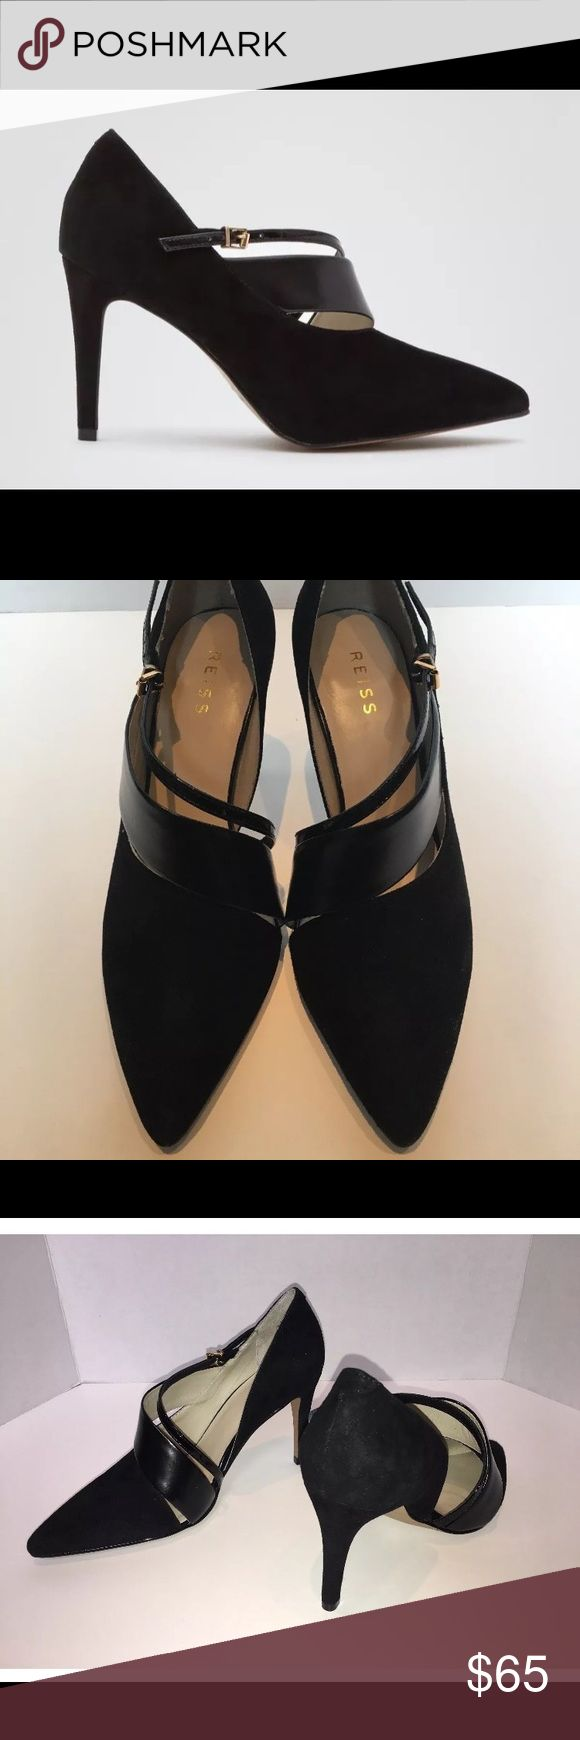 NEW WITH BOX REISS BLACK SUEDE HIGH HEELS!! Double asymmetric straps. Also comes with shoe bag (shown in photos) for extra storage protection.  Condition: New, never been worn  Size: 38 EU, 7 US, 5 UK  Style Code & Name: 853013, JADE   Heel height: 3.5 inches Reiss Shoes Heels